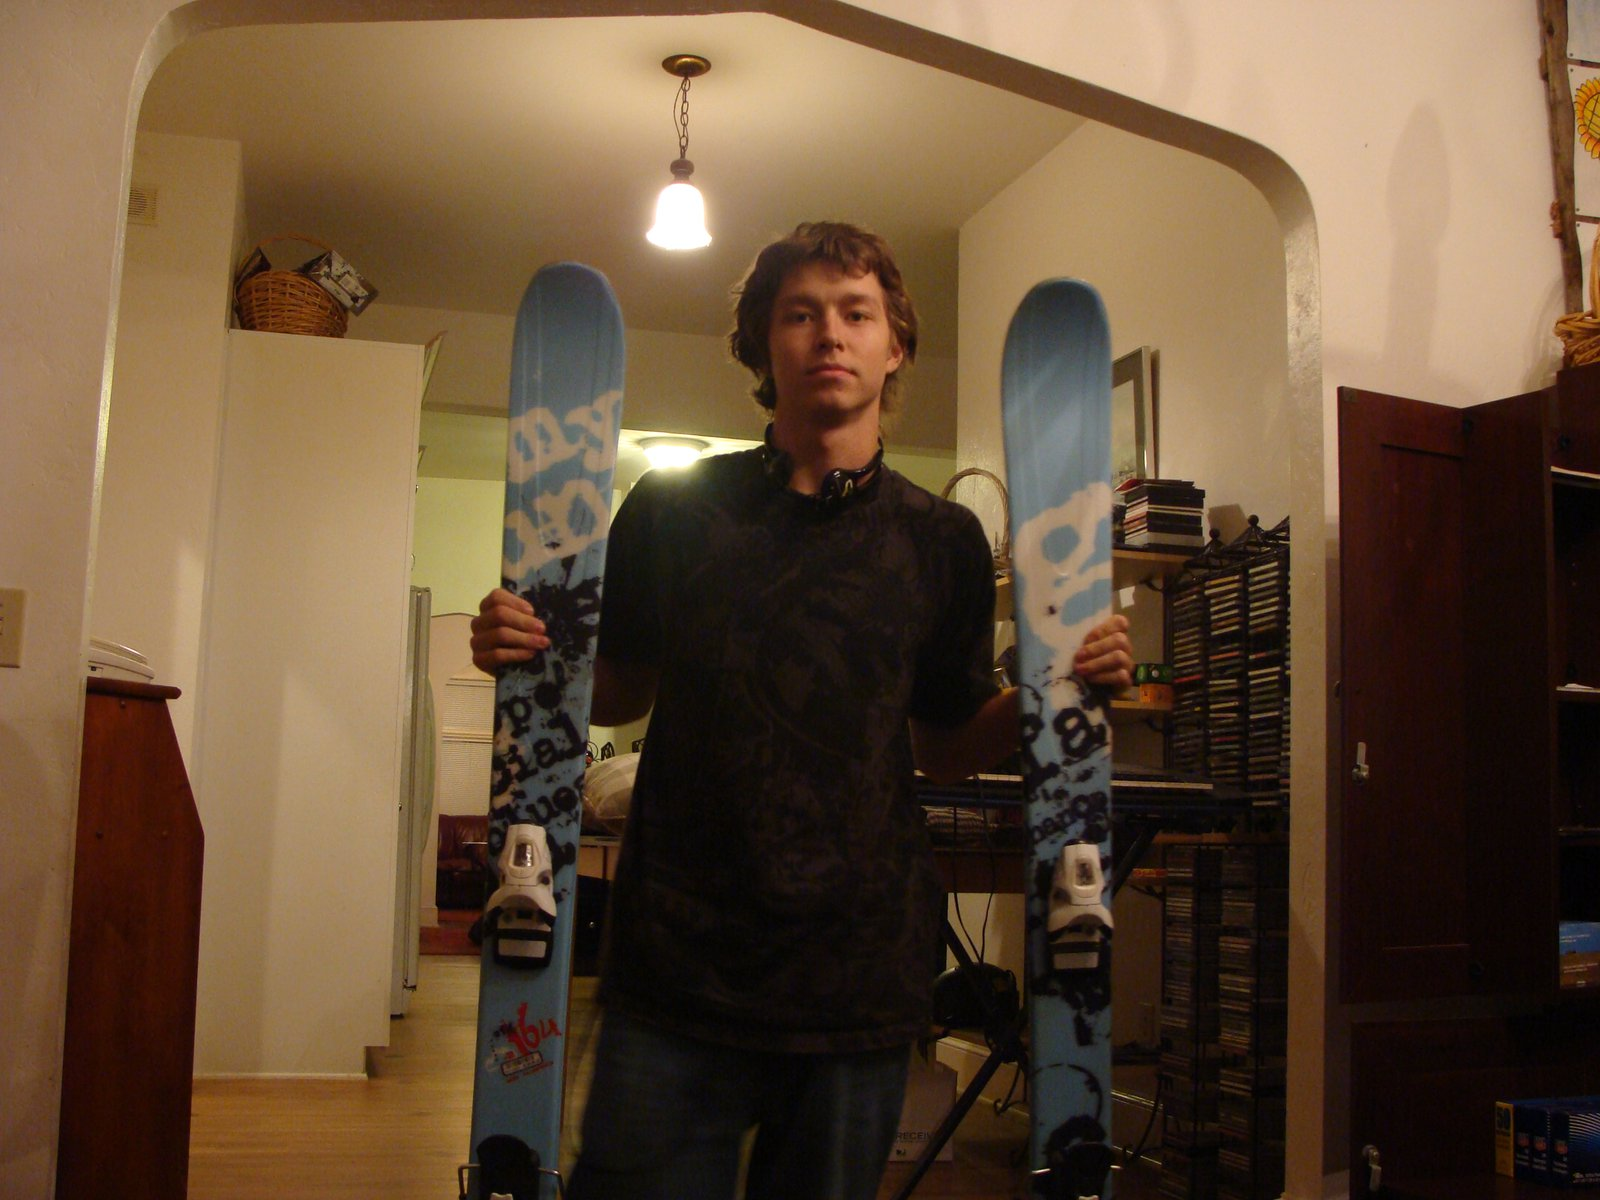 Me and My Skis